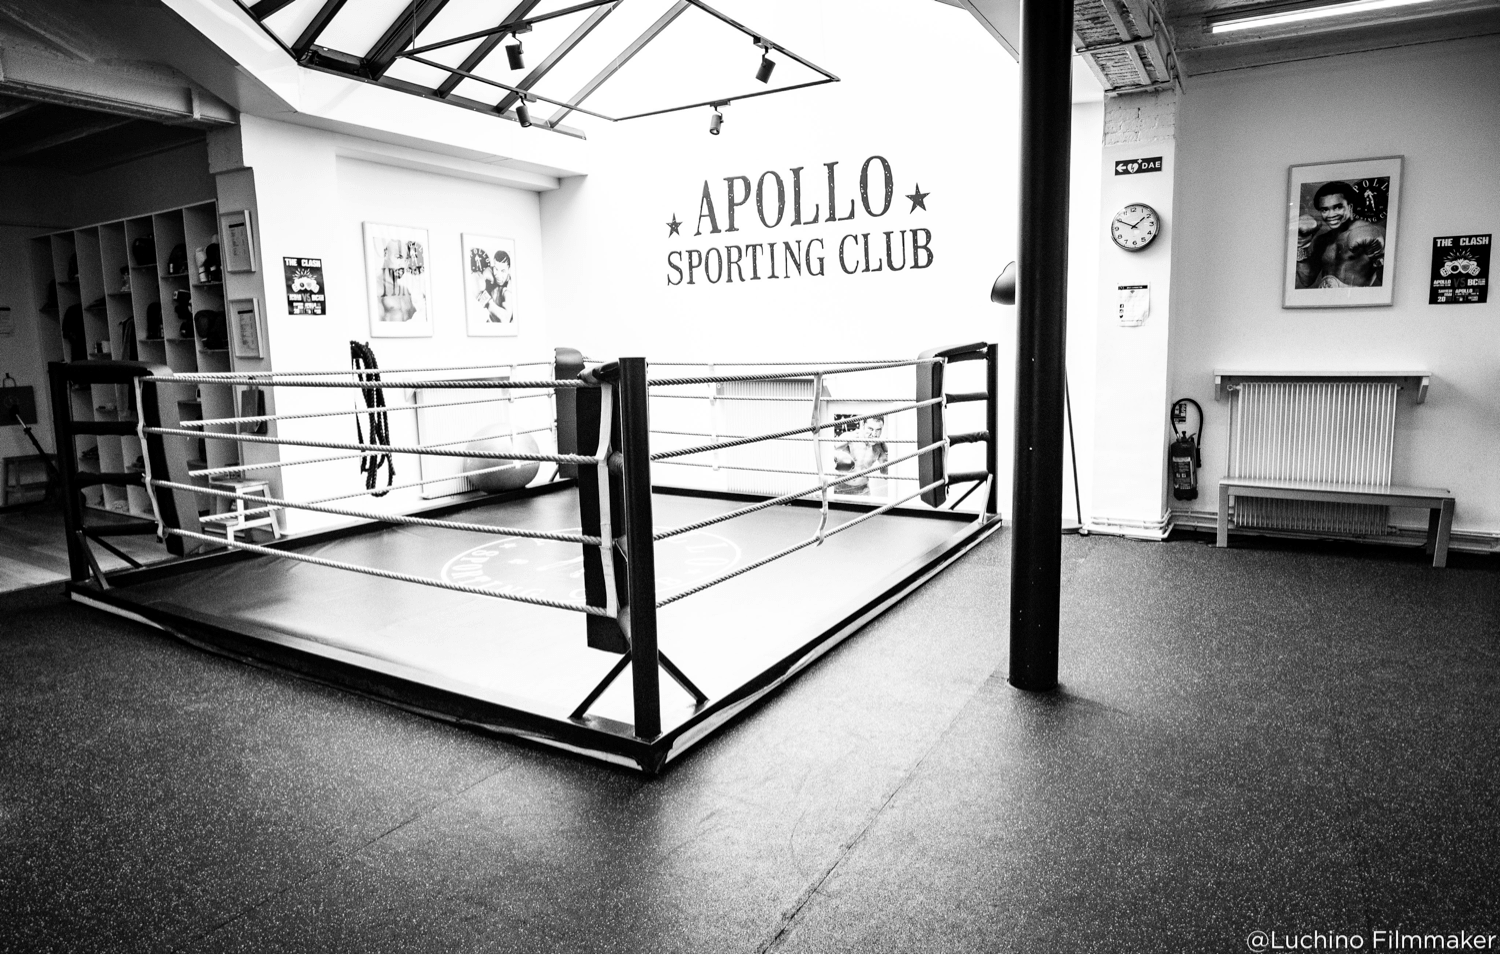 Ring de la salle de boxe Apollo Sporting Club Paris 11 à Parmentier